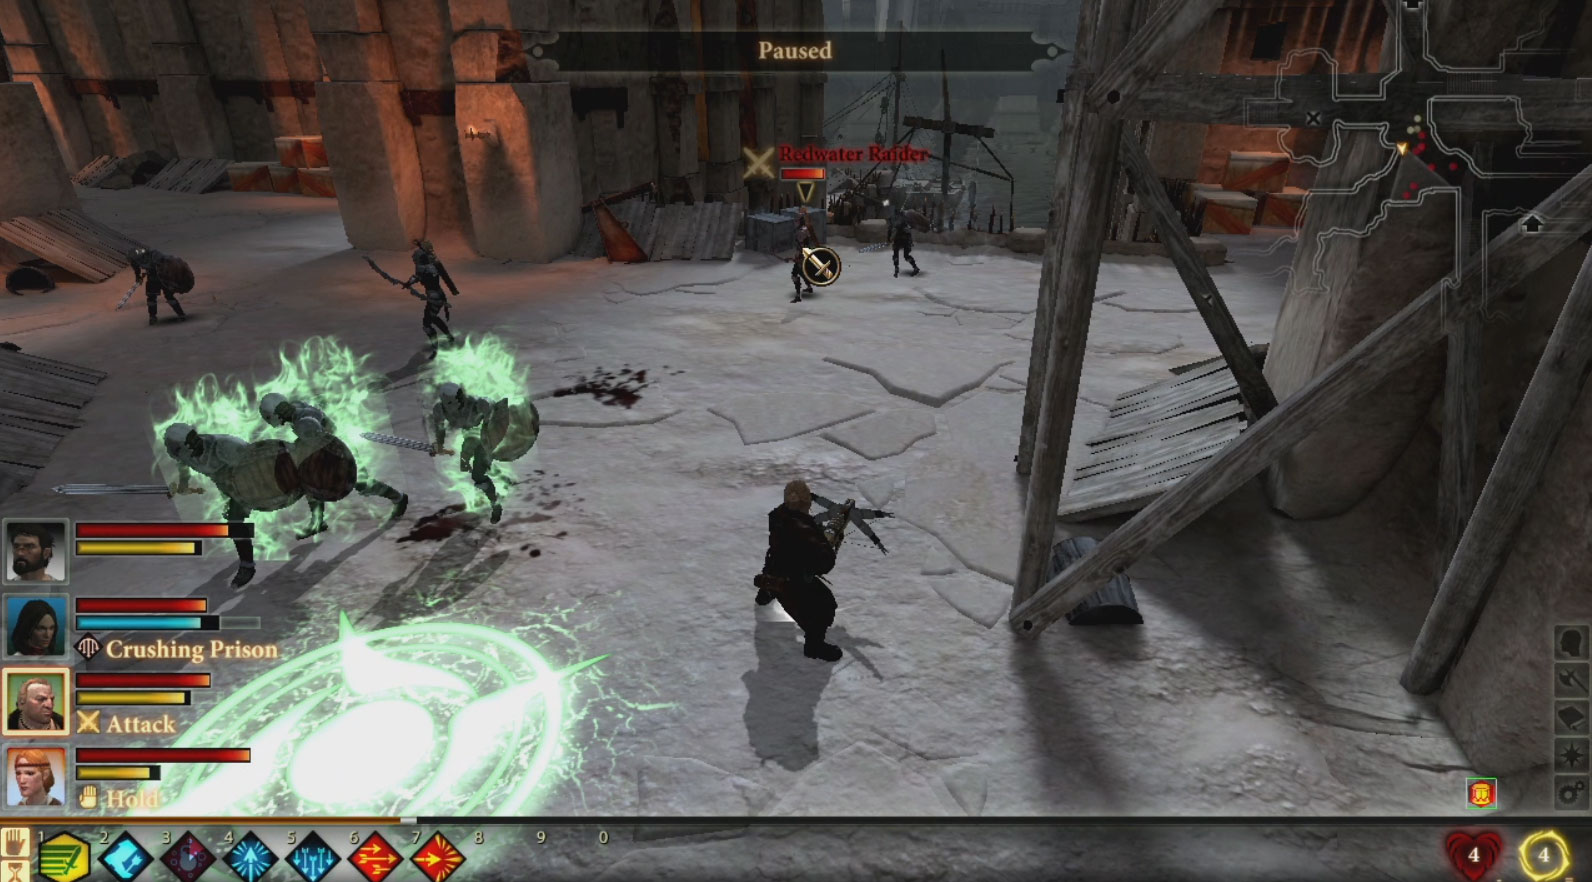 Dragon Age II Game Free Download for PC Full Version - Free PC Games Den